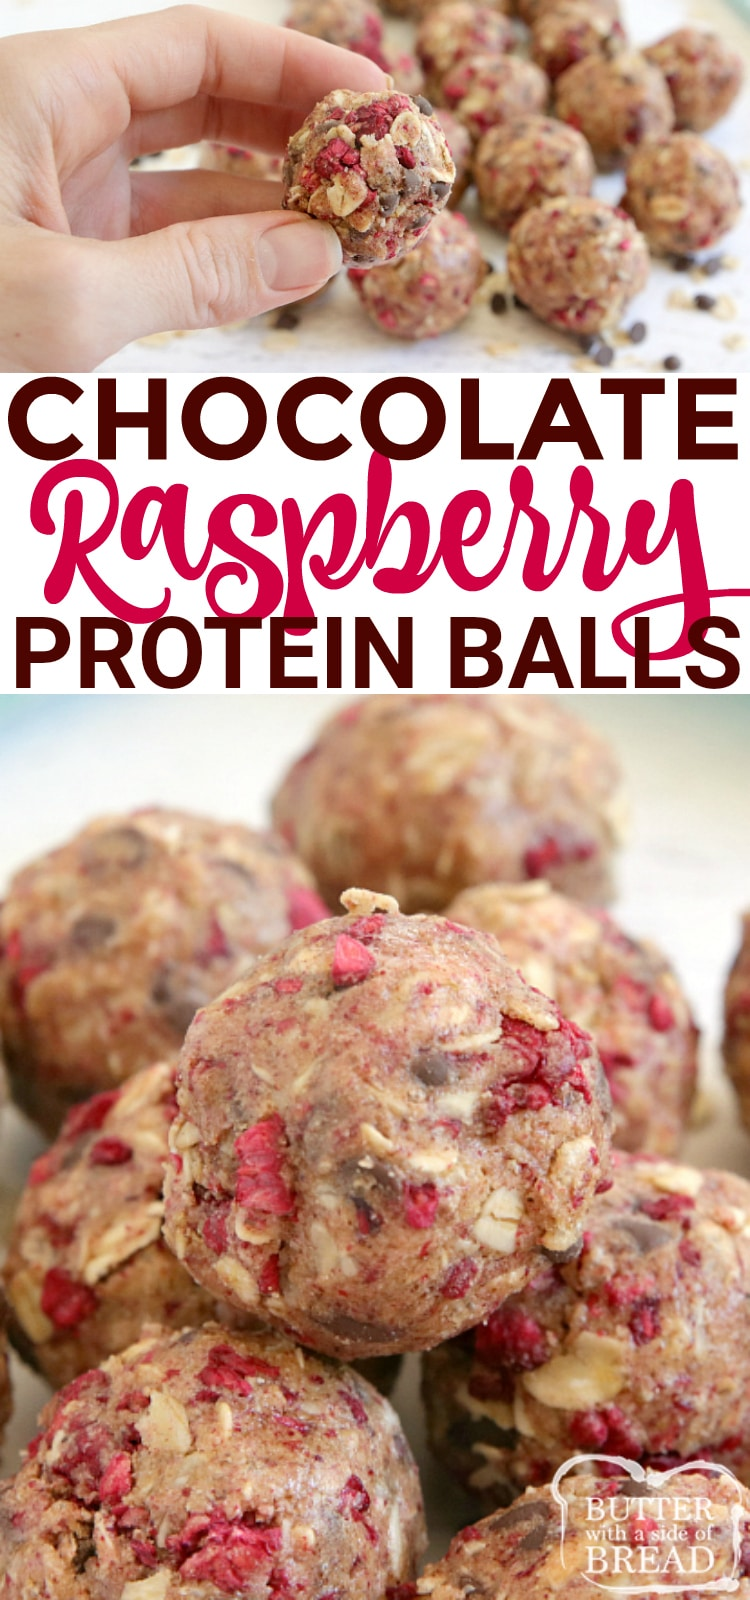 Chocolate Raspberry Protein Balls are simple, delicious, full of protein and can be made in just a few minutes! Made with protein powder, almond butter and freeze-dried raspberries for a high-protein snack.